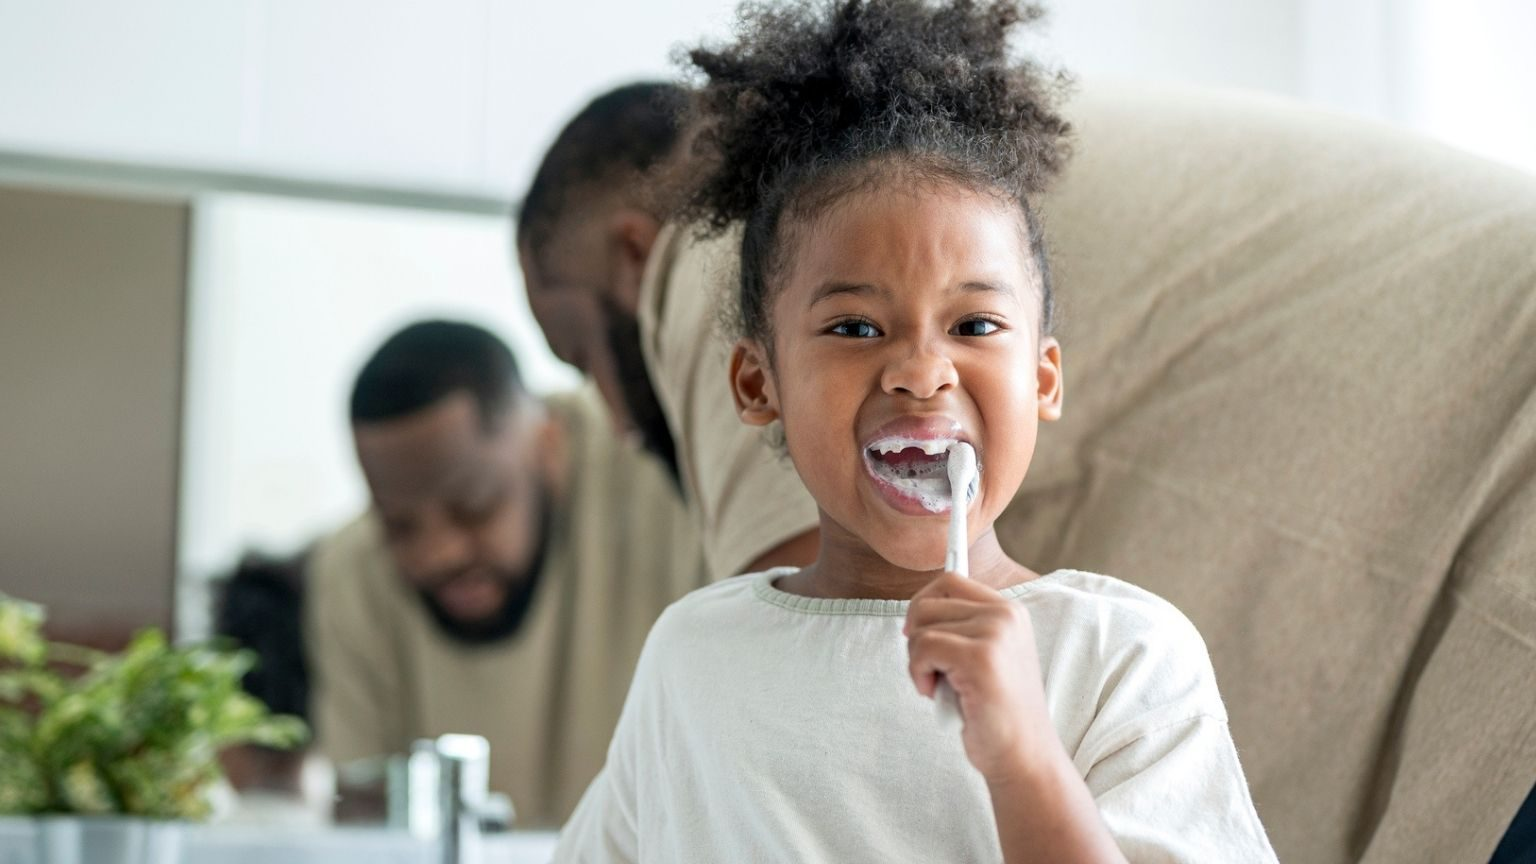 Cute-young-girl-brushing-her-teeth